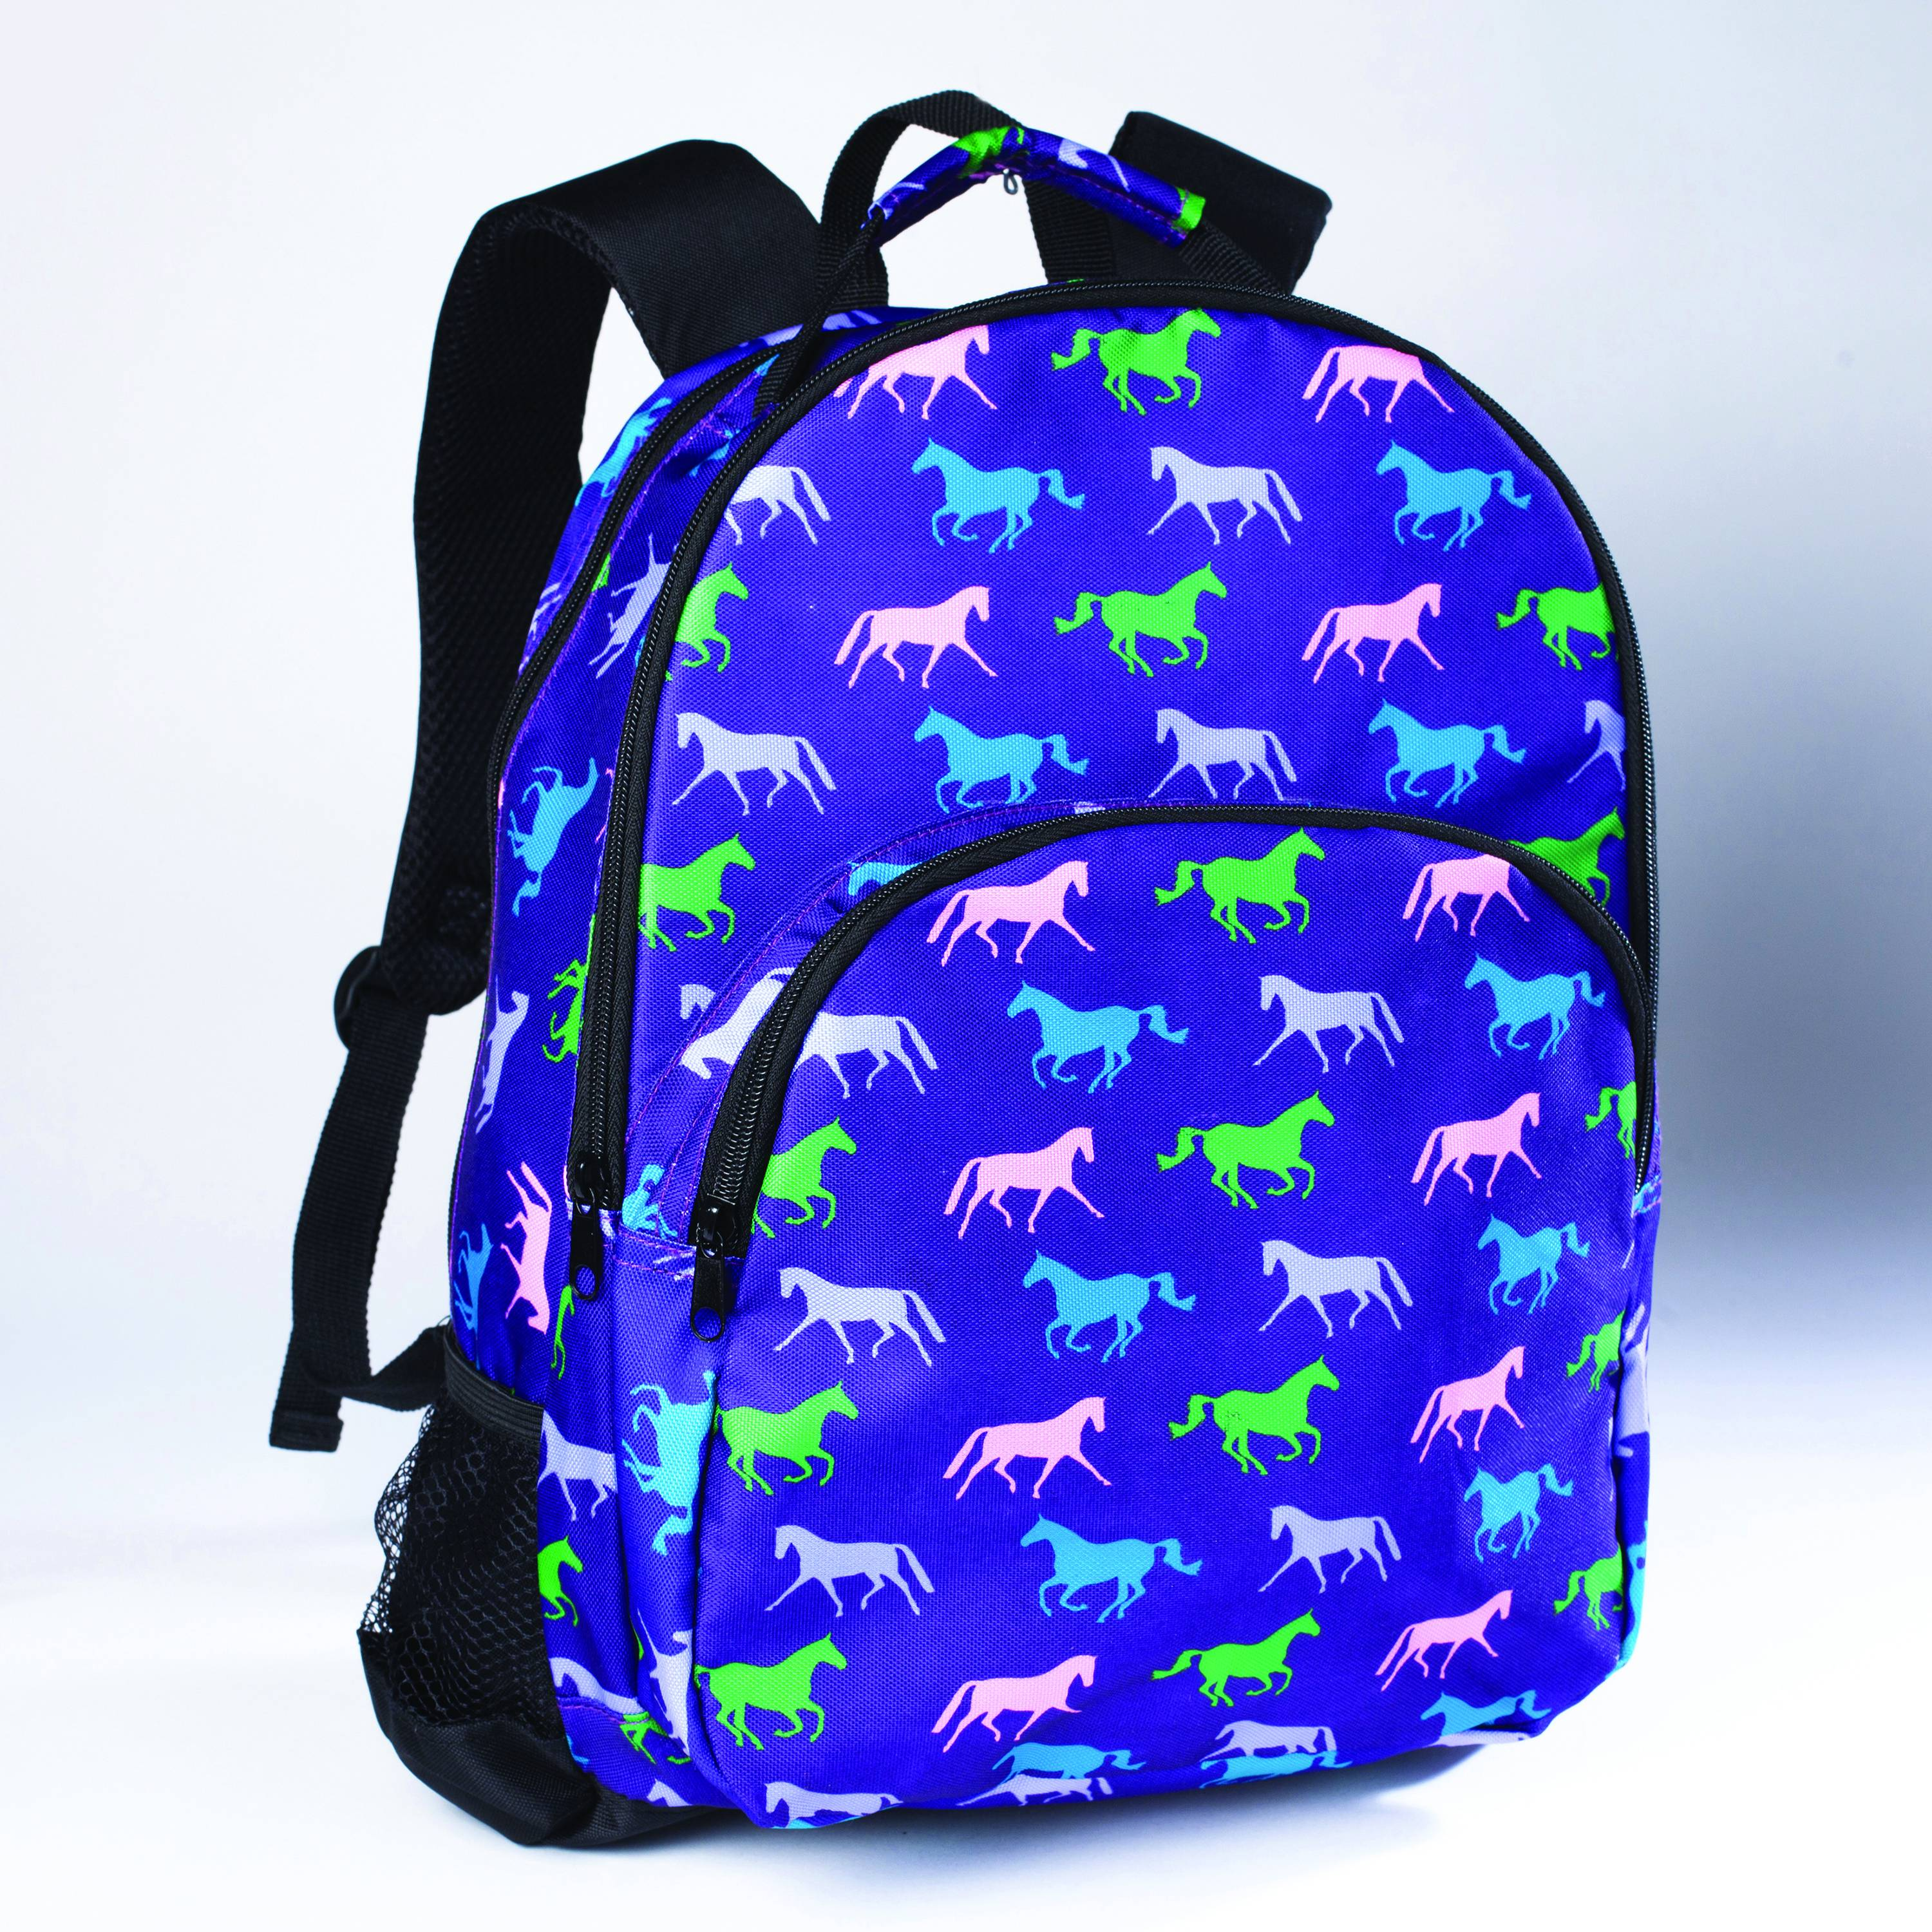 Tek Trek Backpack with Horses